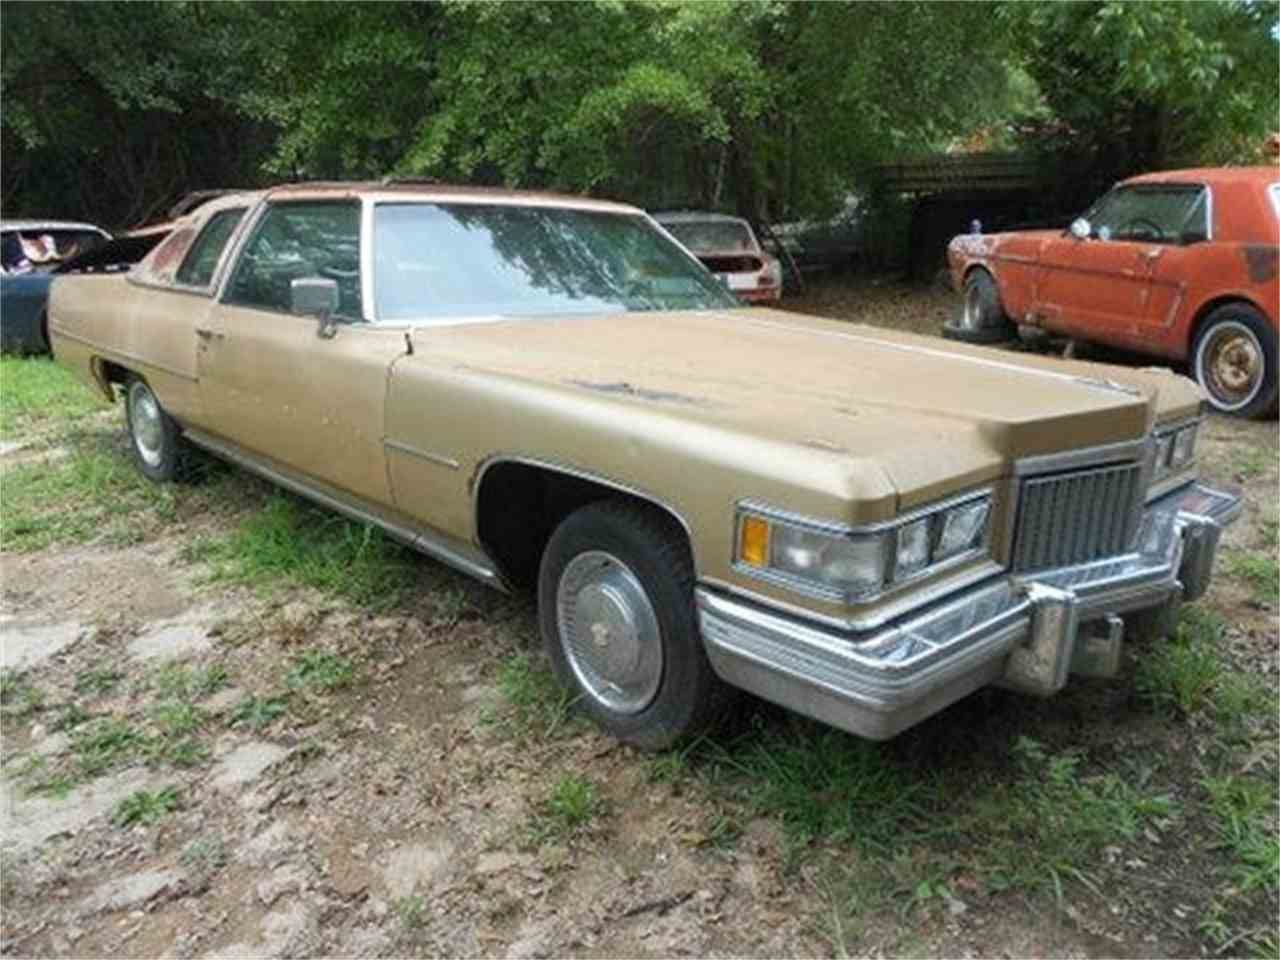 Large Picture of '75 Cadillac DeVille located in South Carolina - $2,500.00 Offered by Classic Cars of South Carolina - J1OU